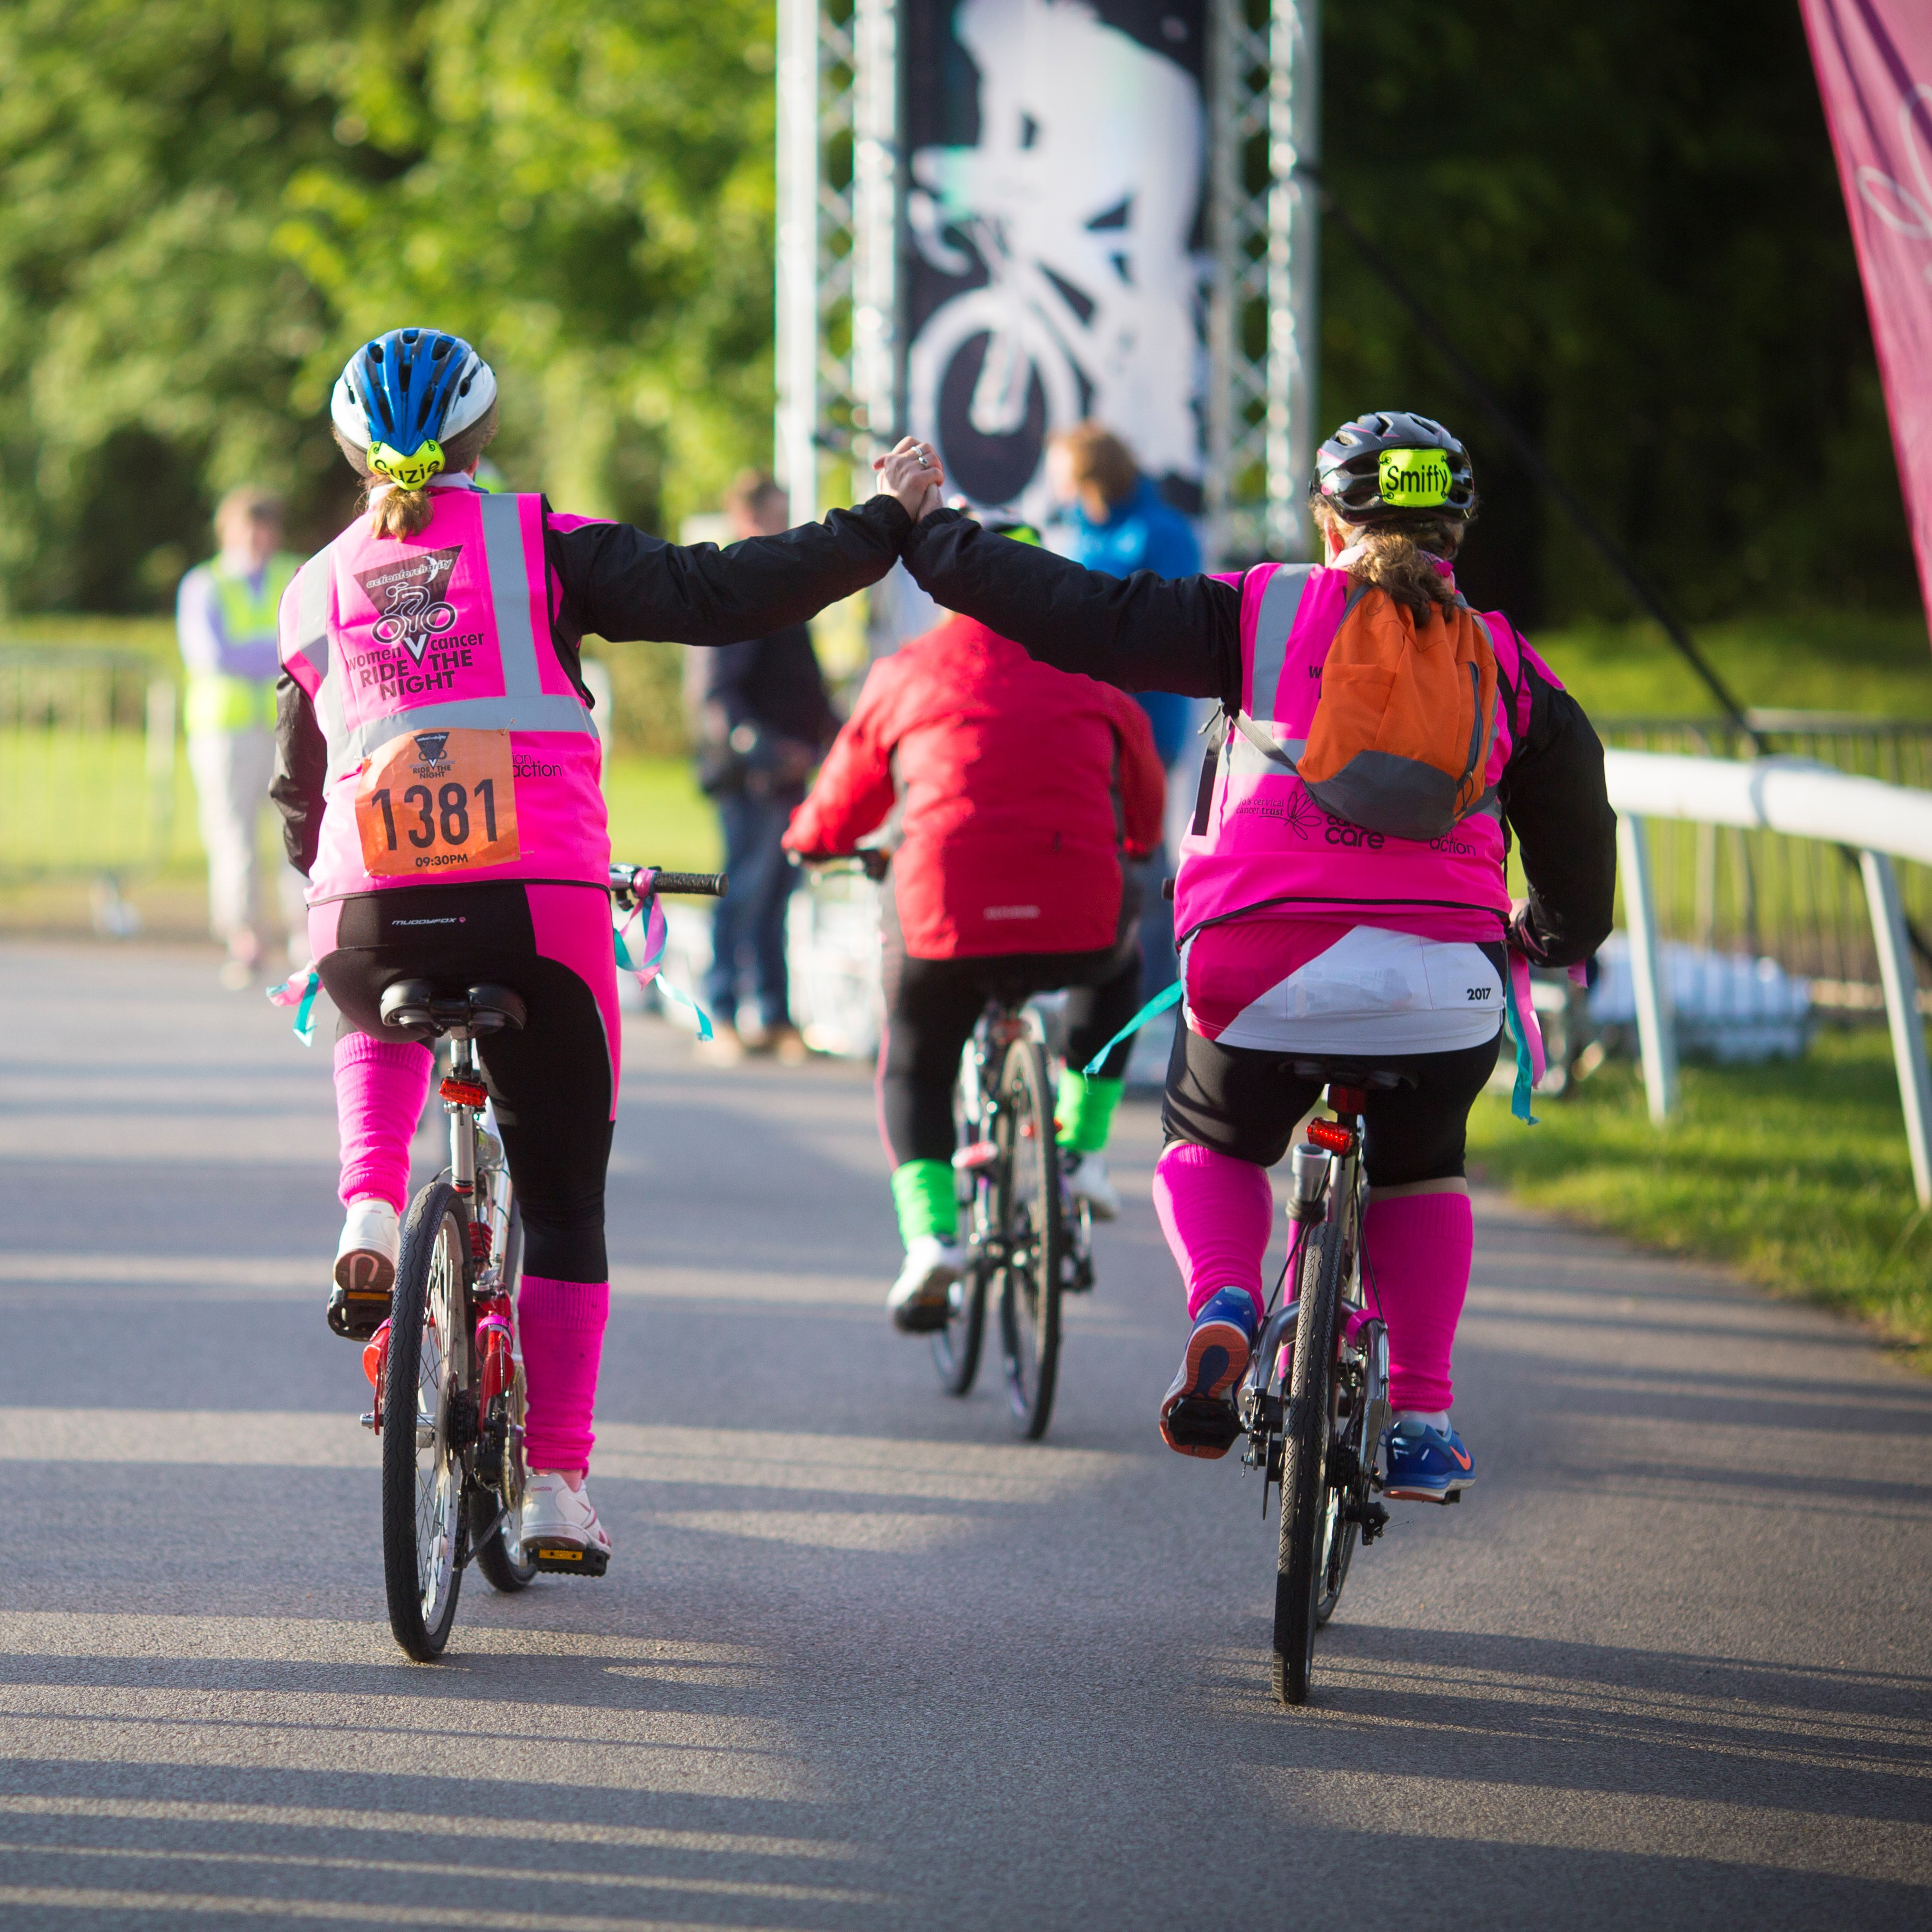 Women V Cancer Ride the Night participants high fiving in celebration of conquering a 100 km cycling challenge in London to raise money for Ovarian Cancer Action, Breast Cancer Care and Jo's Cervical Cancer Trust.